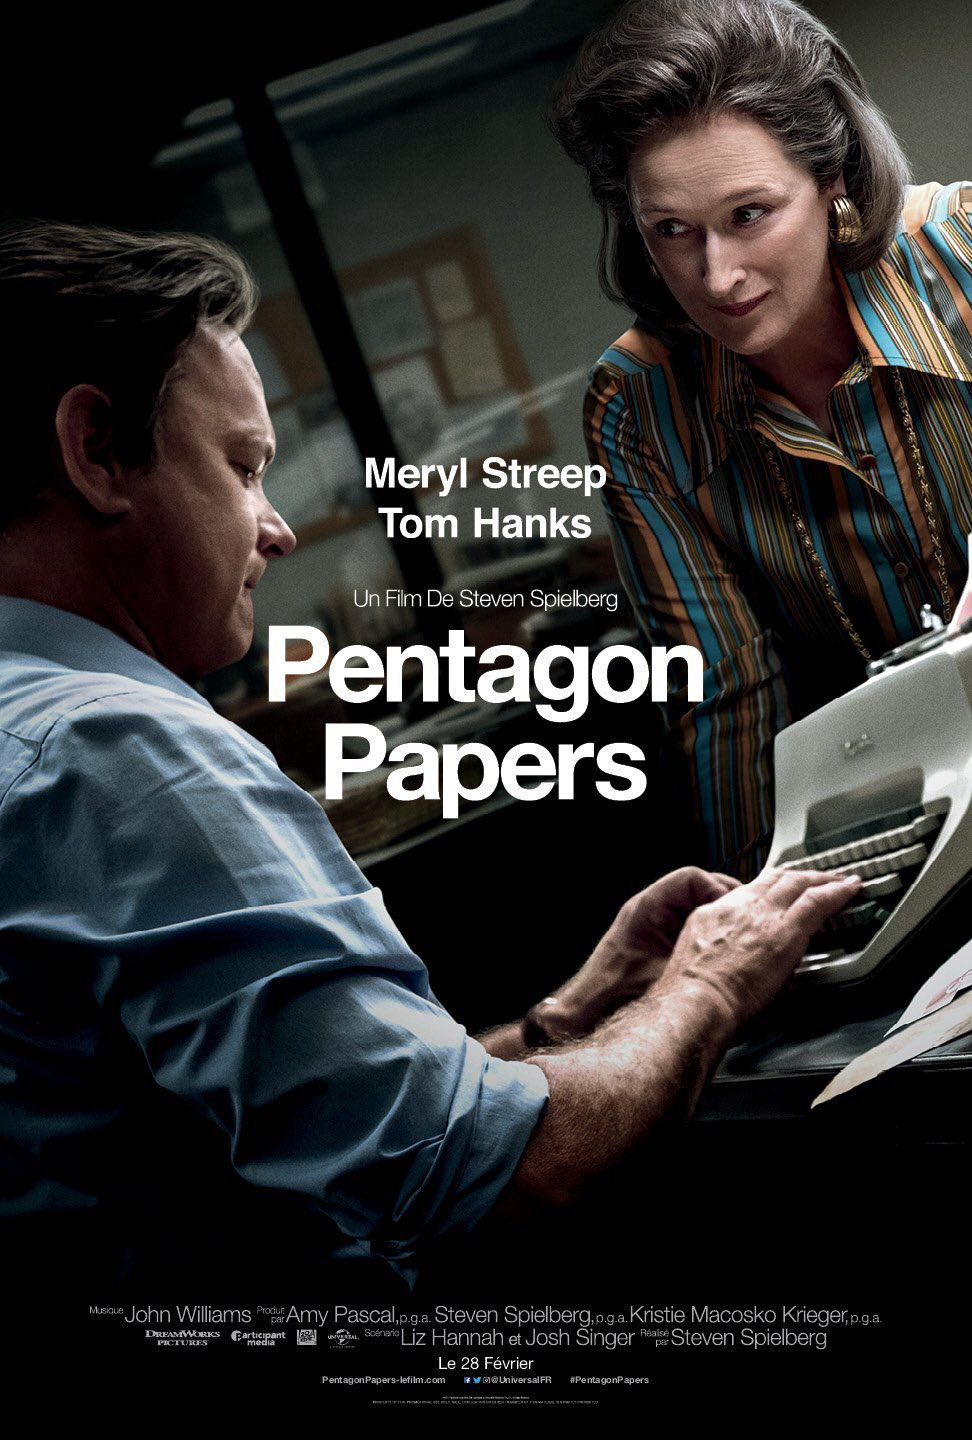 The Post - Pentagon Papers - Tom Hanks, Meryl Streep